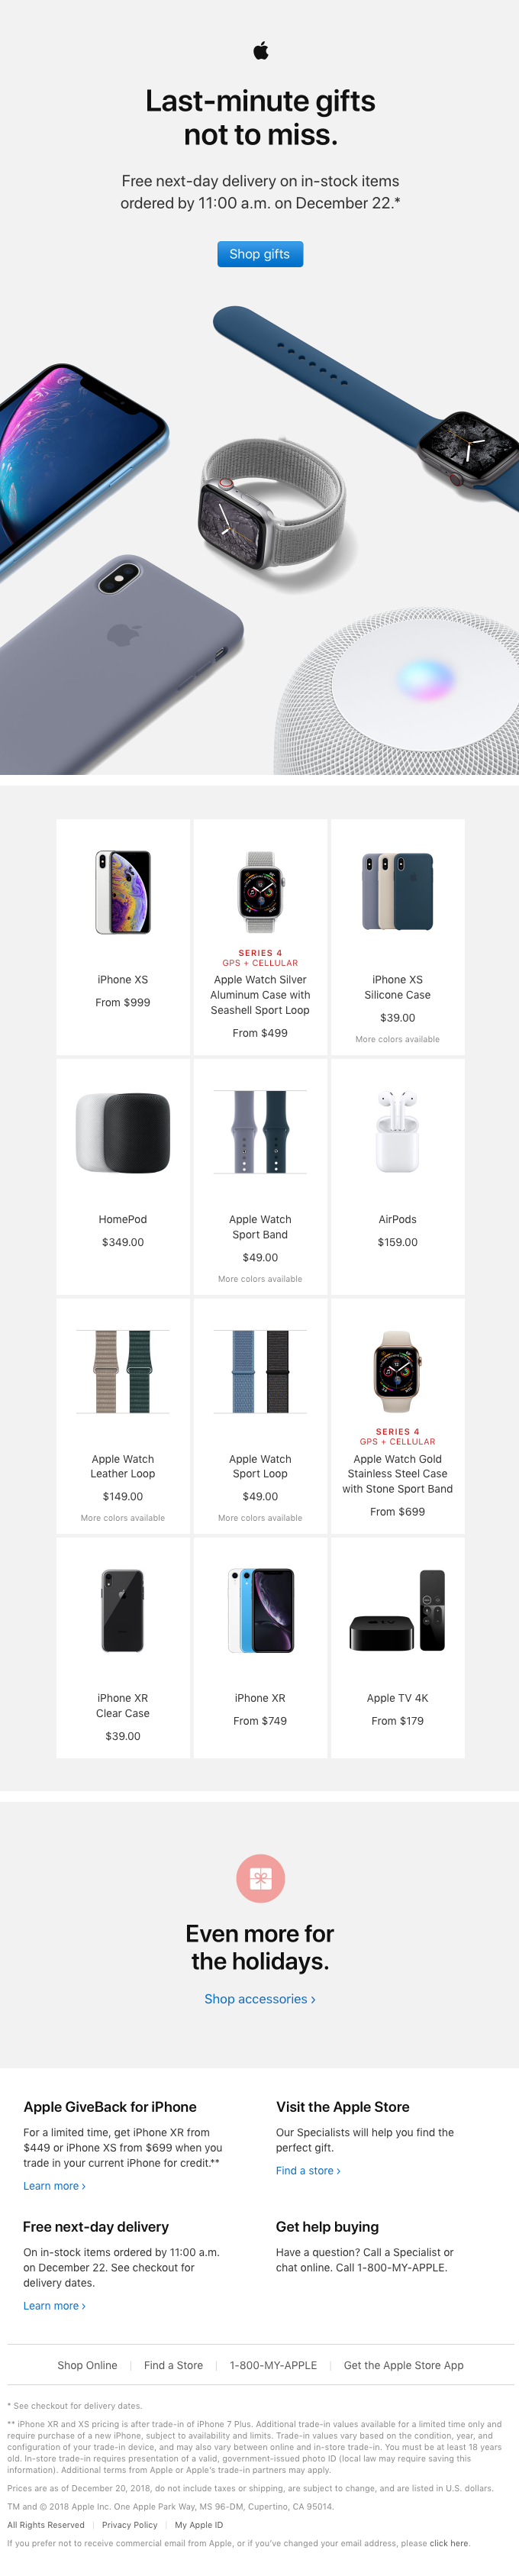 Order last-minute gifts from Apple by December 22.